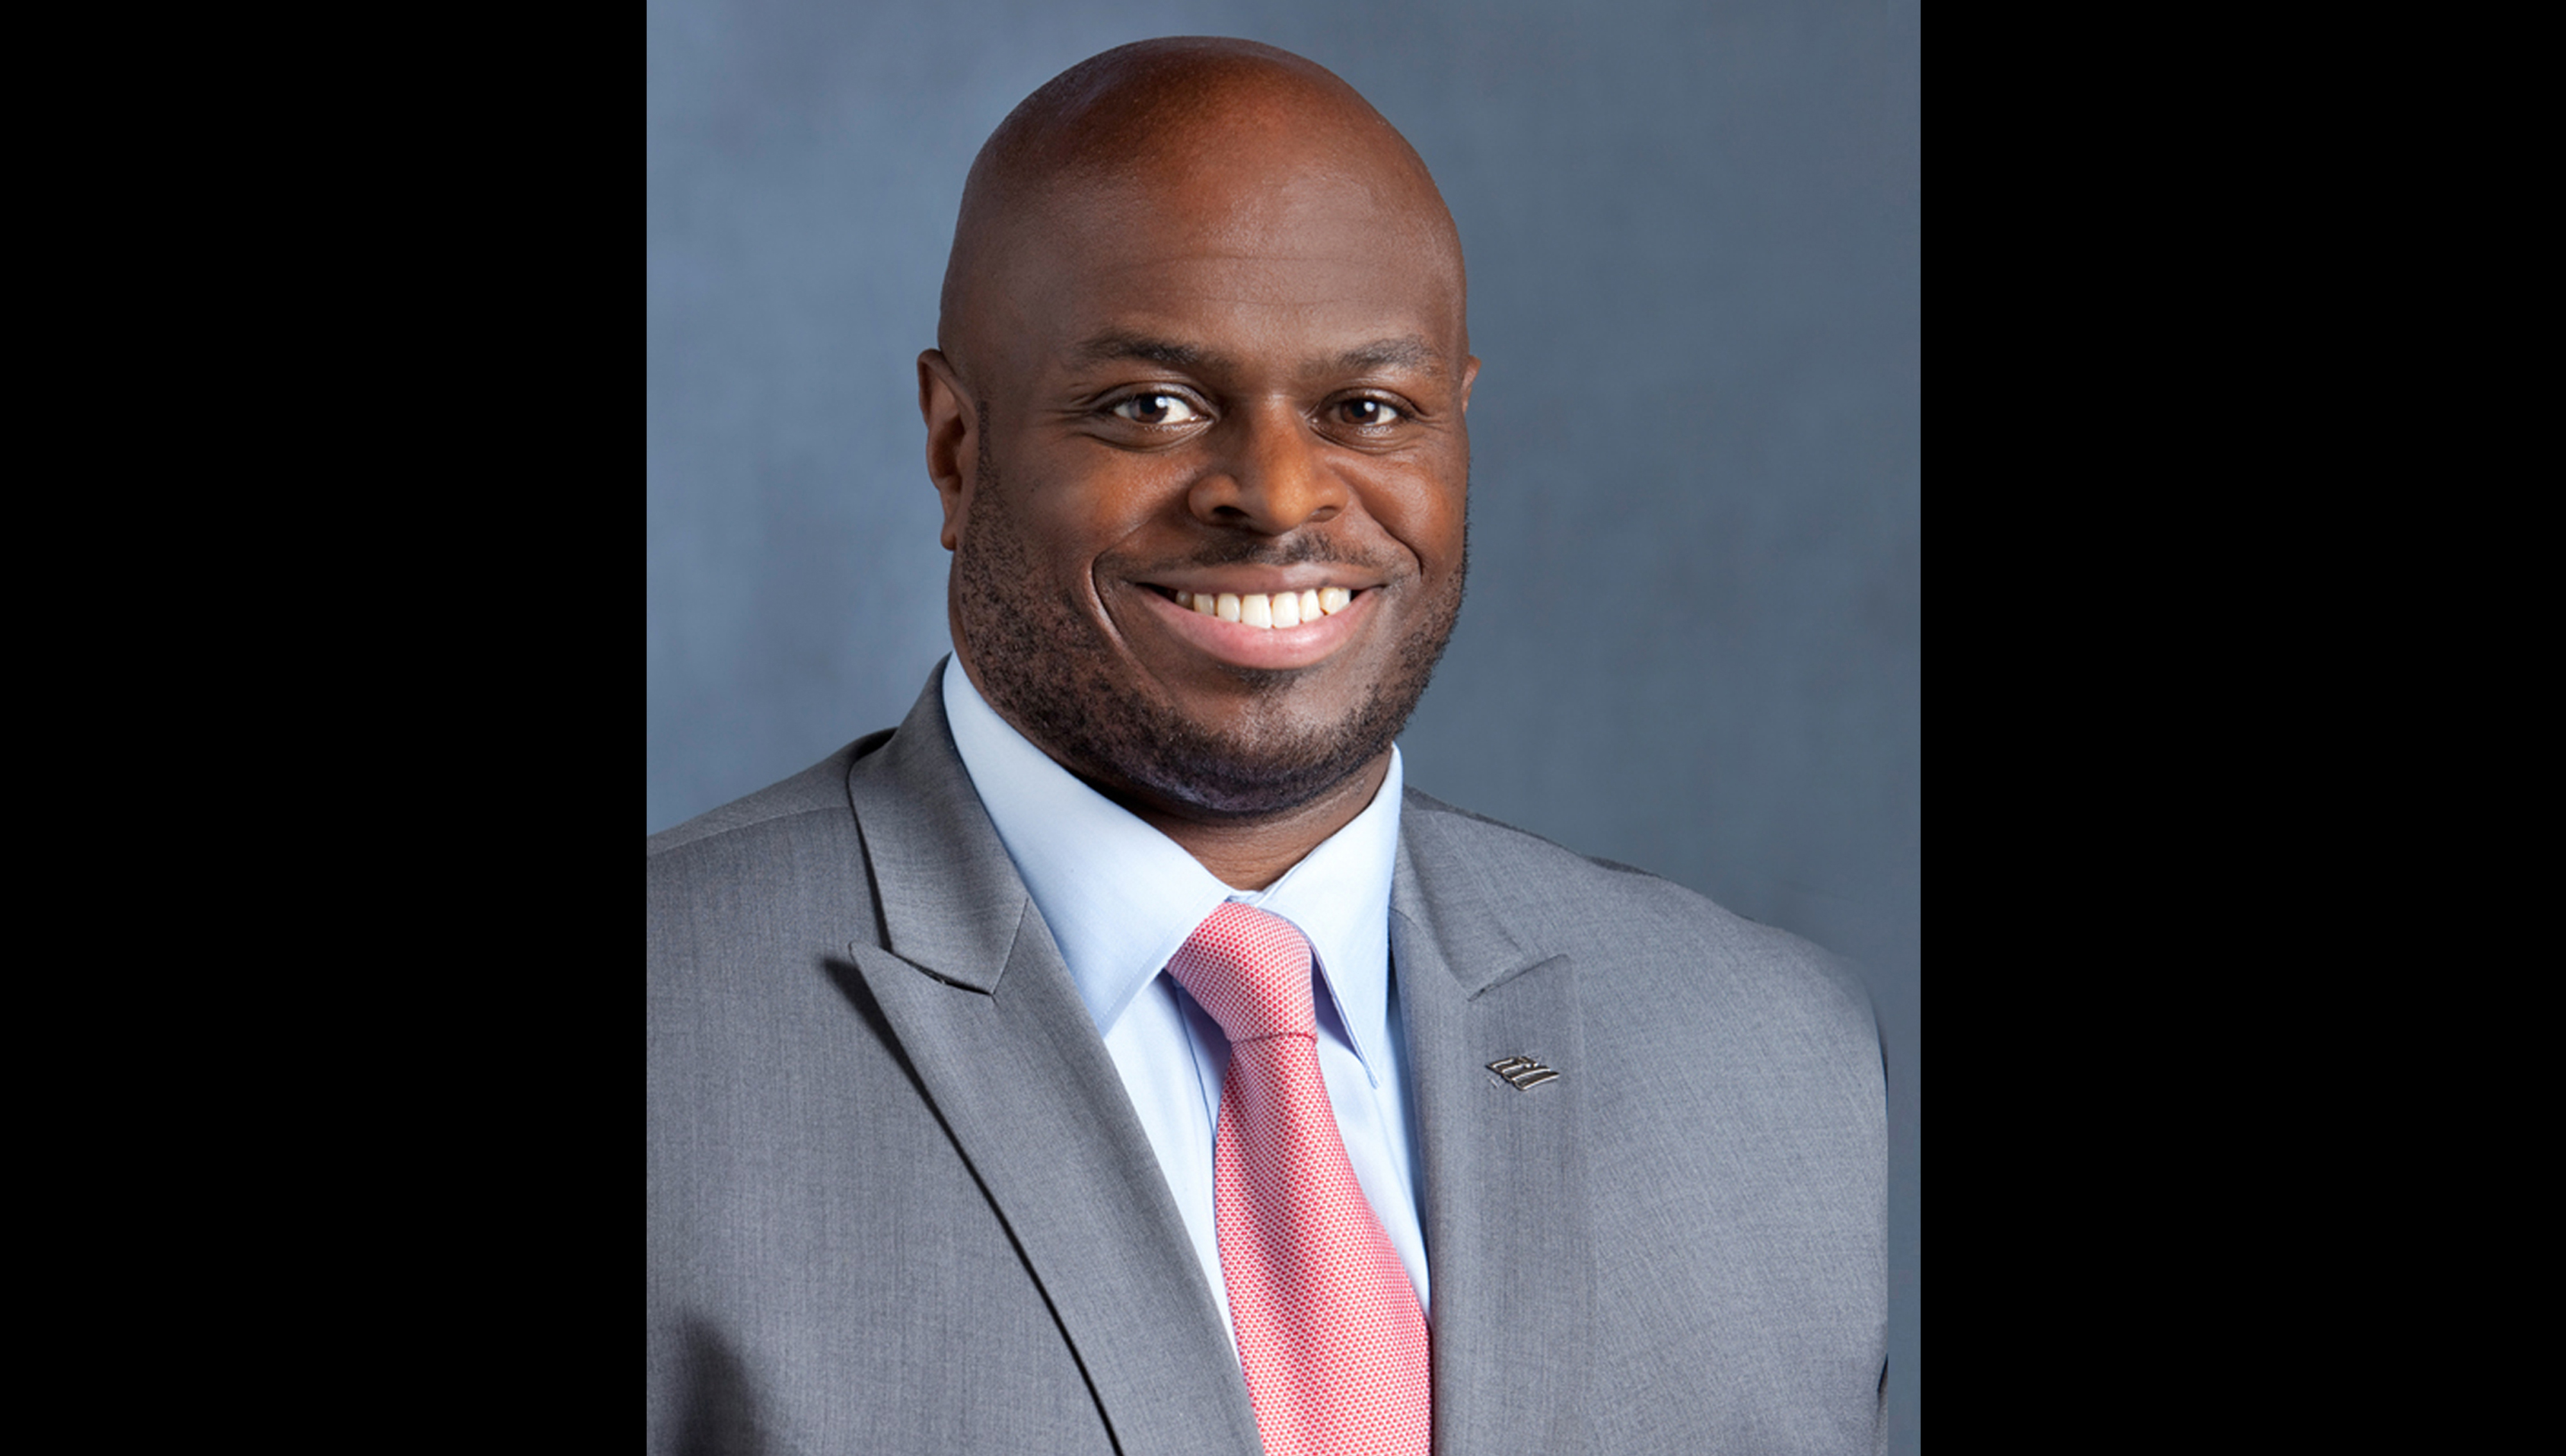 Dr. Tony Allen appointed to Advisory Council by Federal Reserve